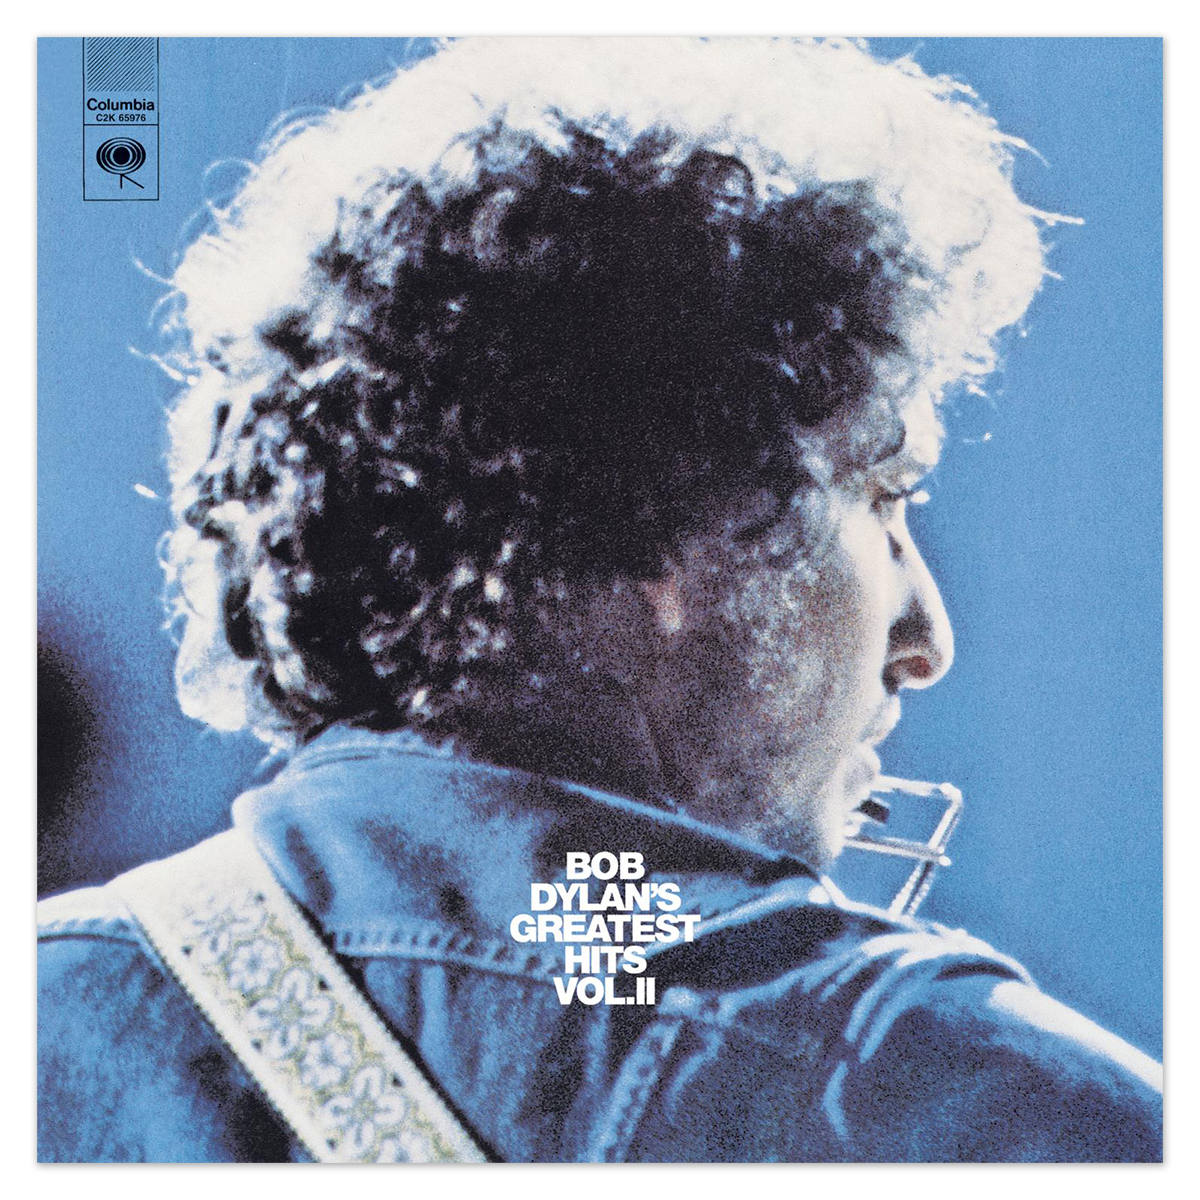 Bob Dylan's Greatest Hits Volume II CD